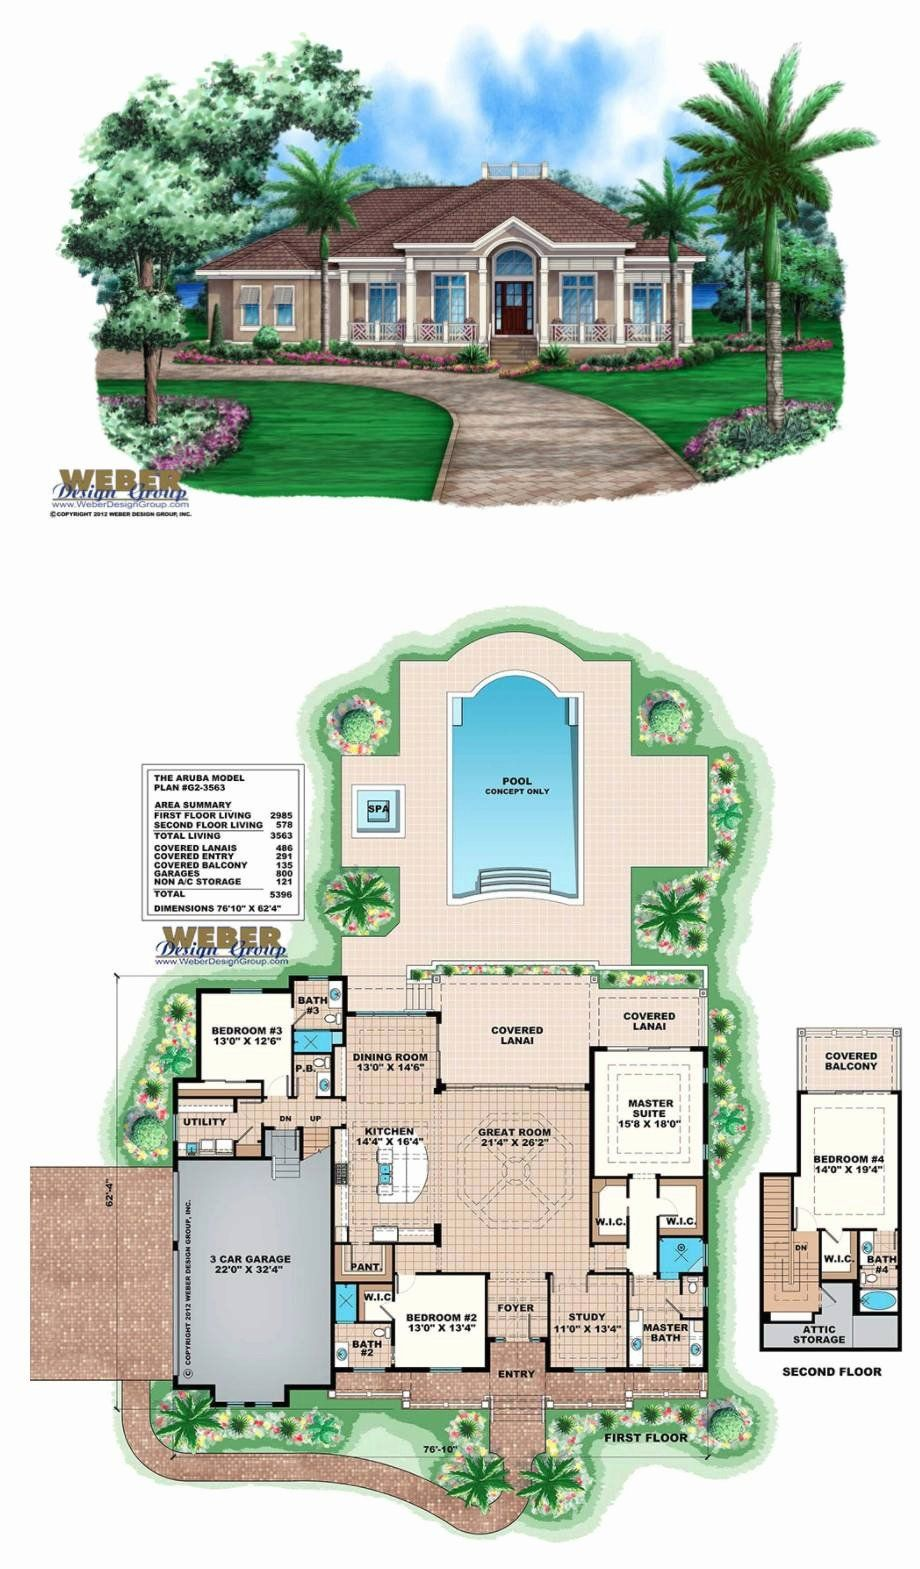 Old Florida Style House Plans Awesome Old Florida Style House Plans Inspirational Old Florida In 2020 Florida House Plans Beach House Plans Beach House Plan